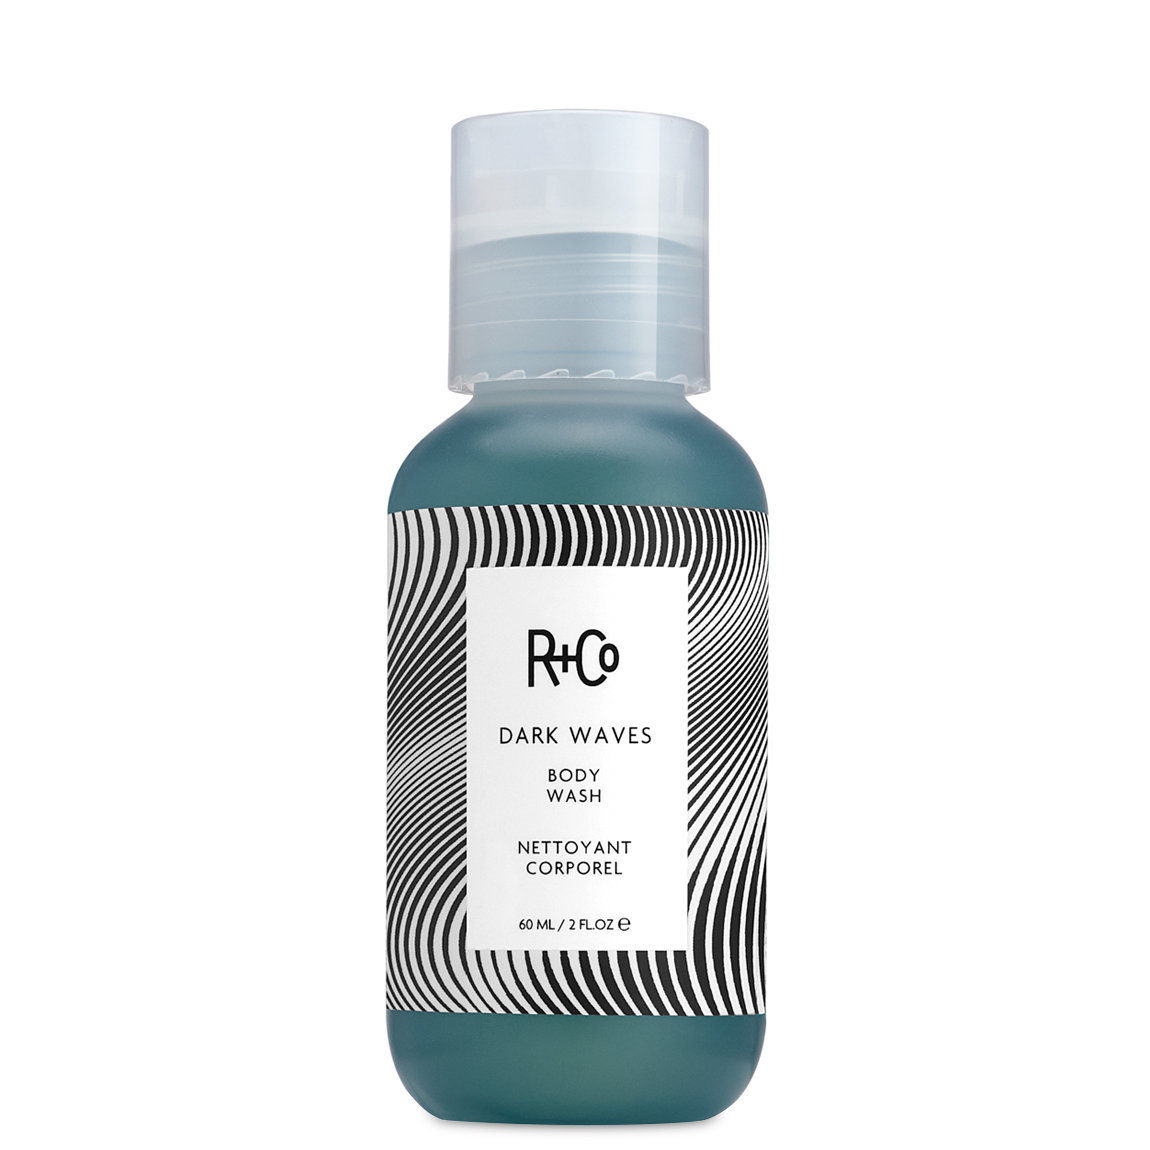 R+Co Dark Waves Body Wash product swatch.